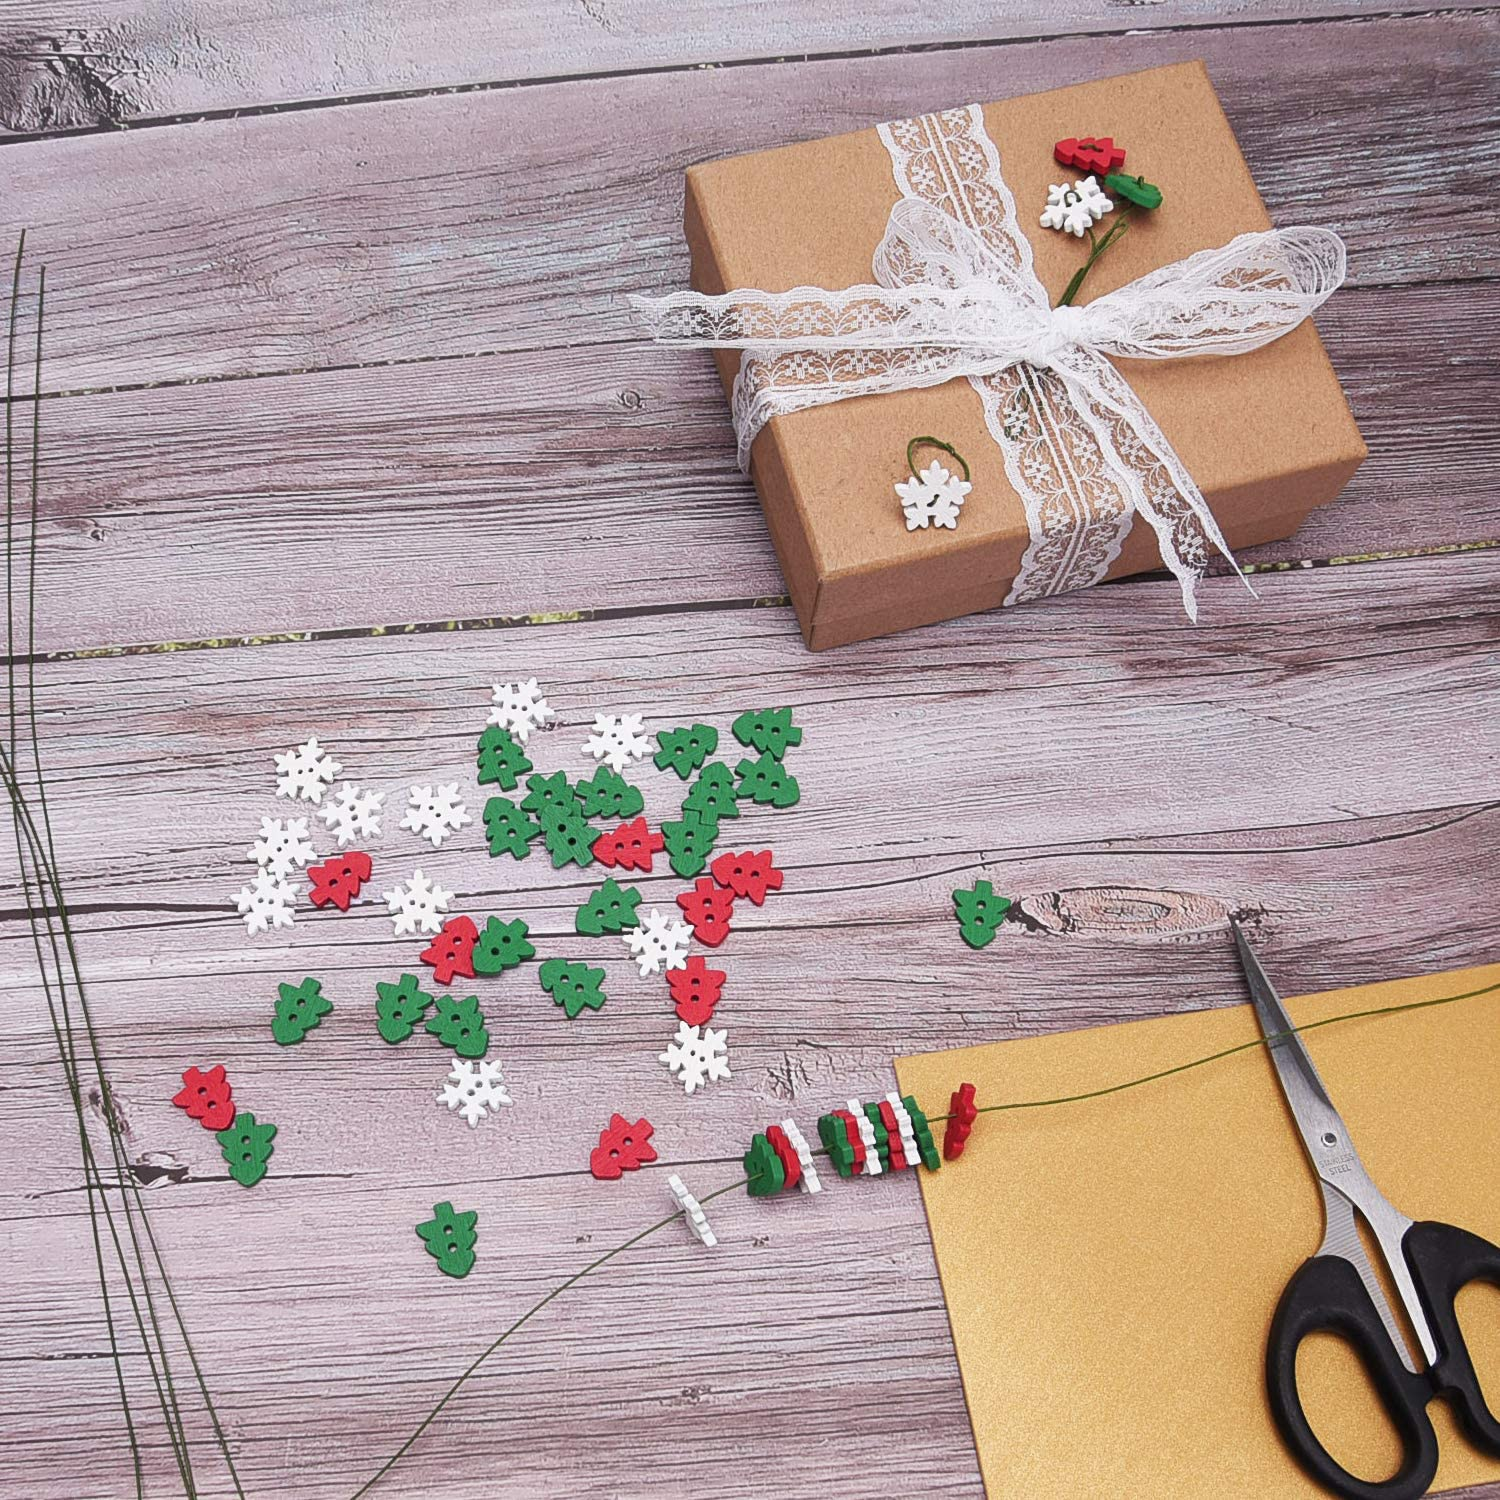 Livder 150 Pieces Christmas Wooden Buttons Sewing Snowflake Button with 2 Holes Red, Green, White